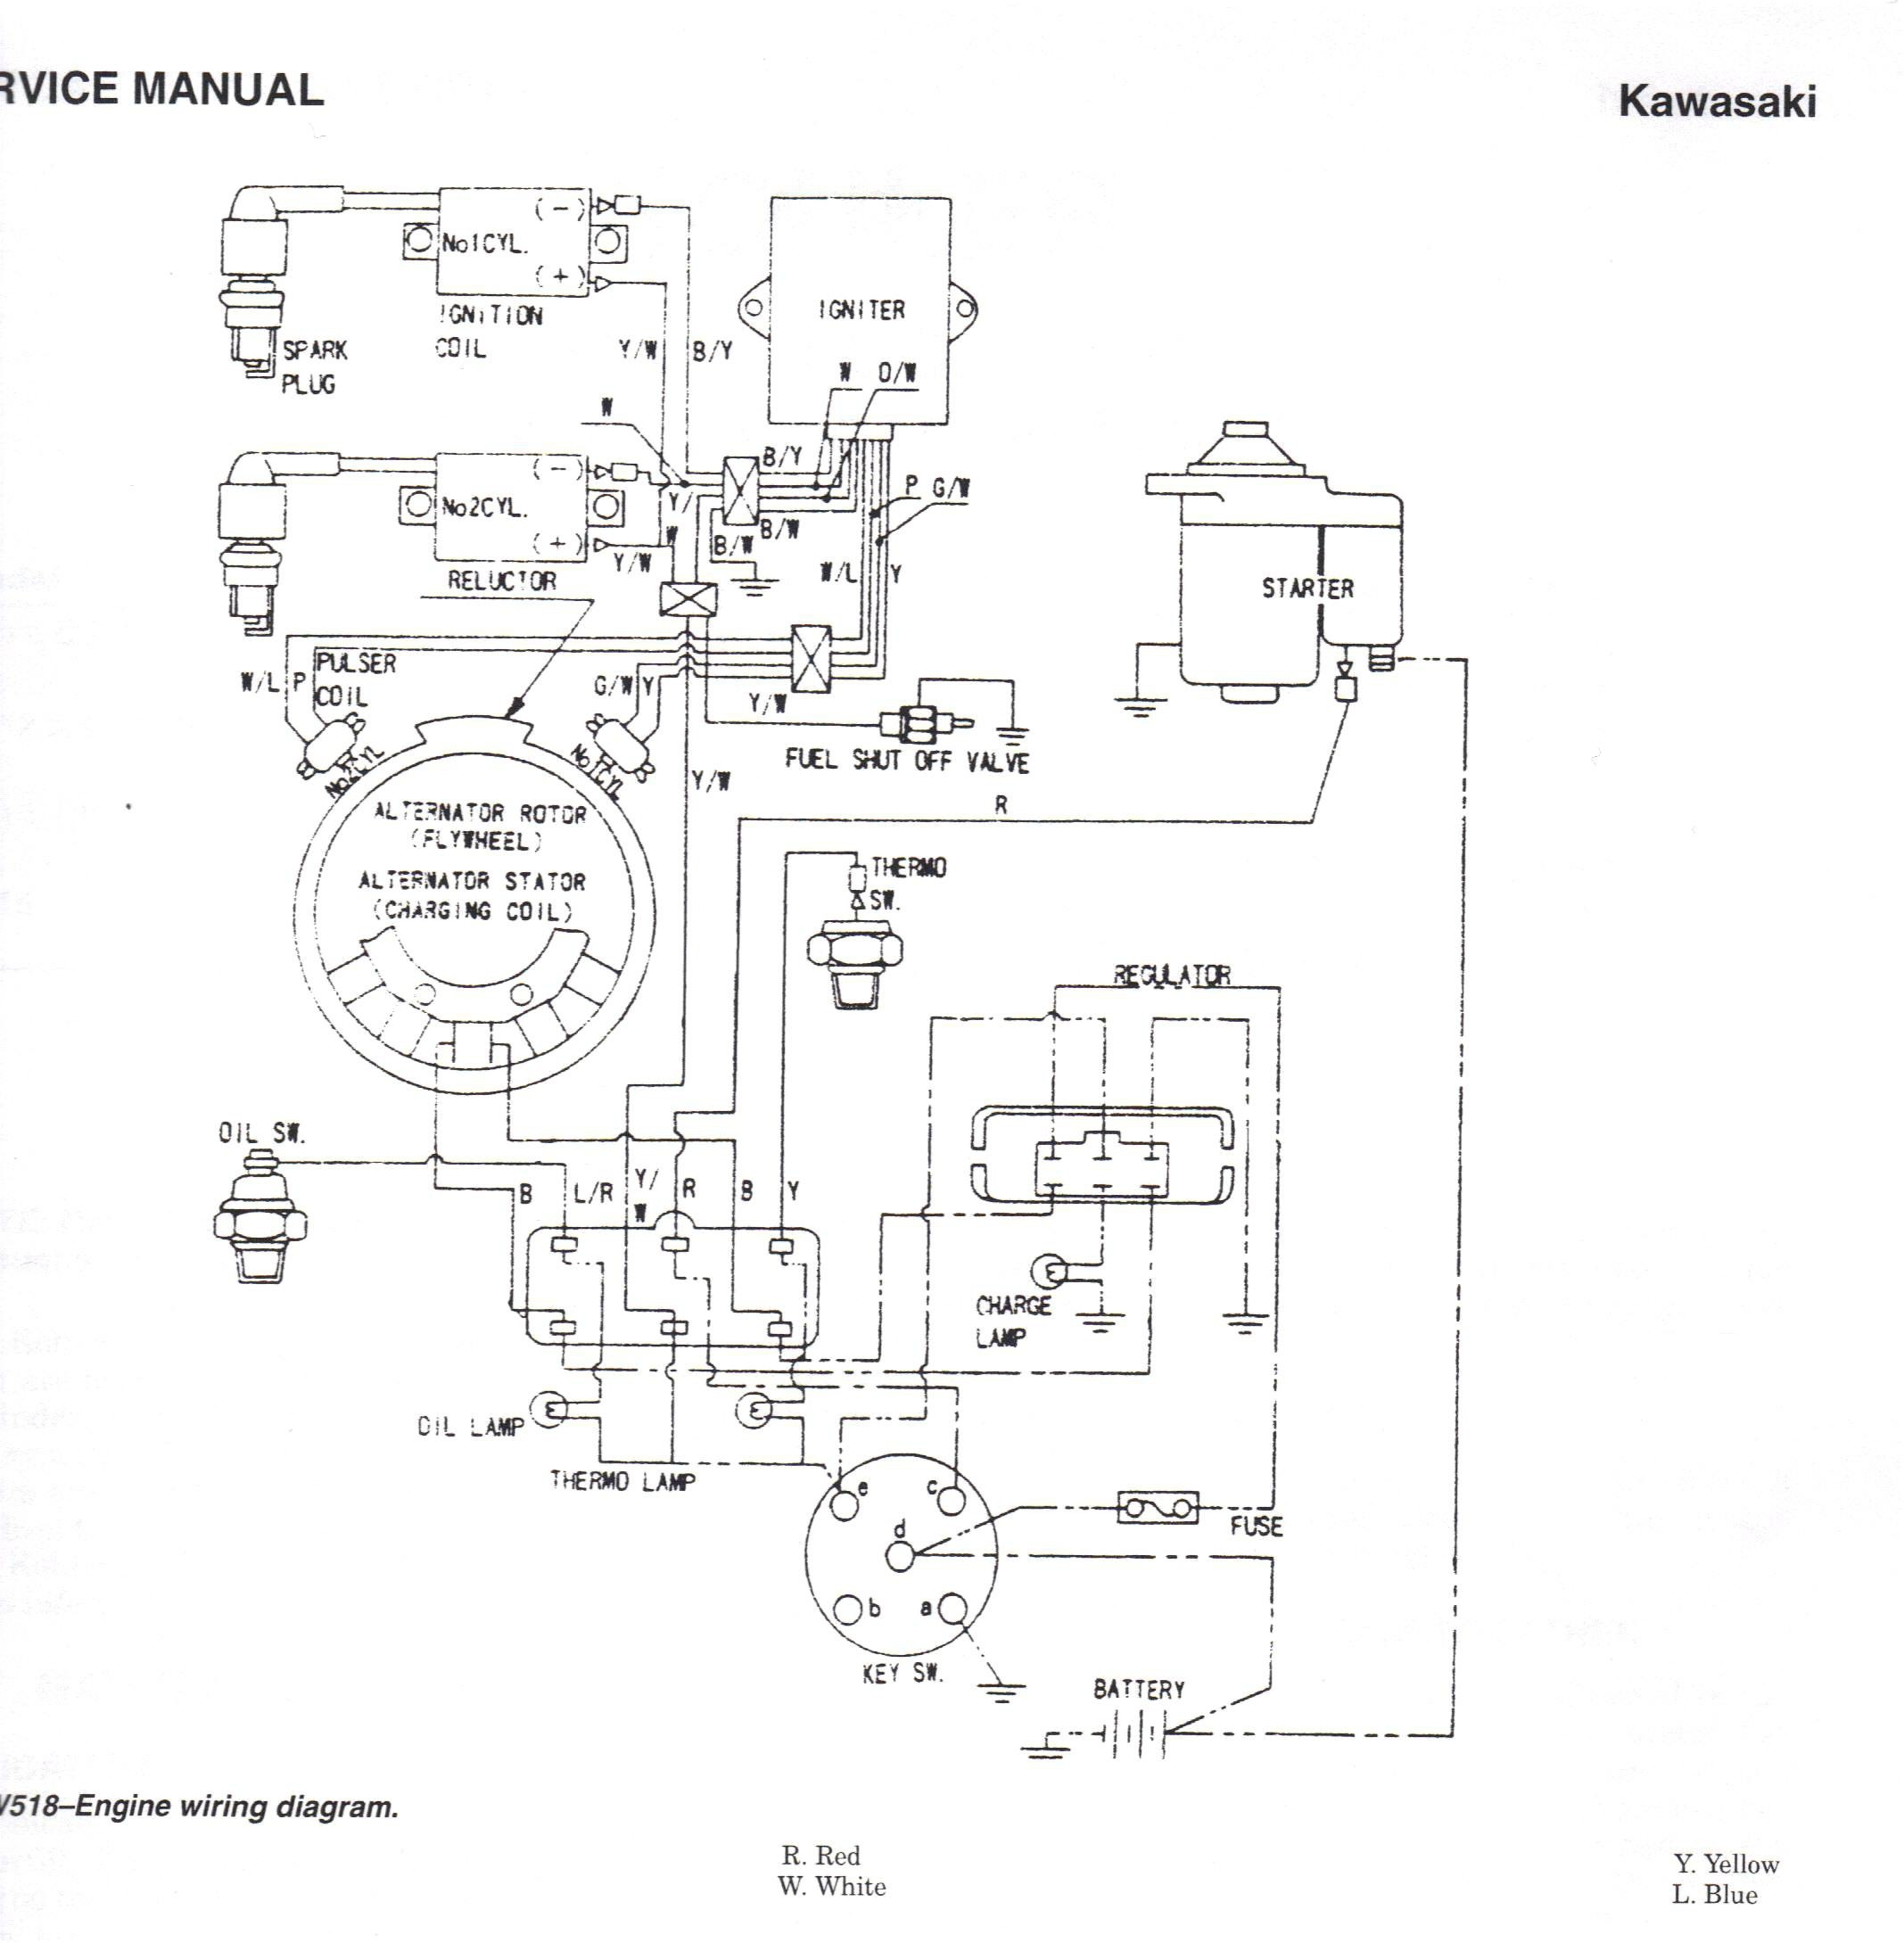 Wiring Diagram For John Deere 2040 Tractor besides John Deere 2640 Tractor Fuel Pump likewise Kubota M7040 Radio Wiring Diagram furthermore John Deere Hydraulic Pump Diagram further John Deere 855 Parts Diagram. on john deere 2240